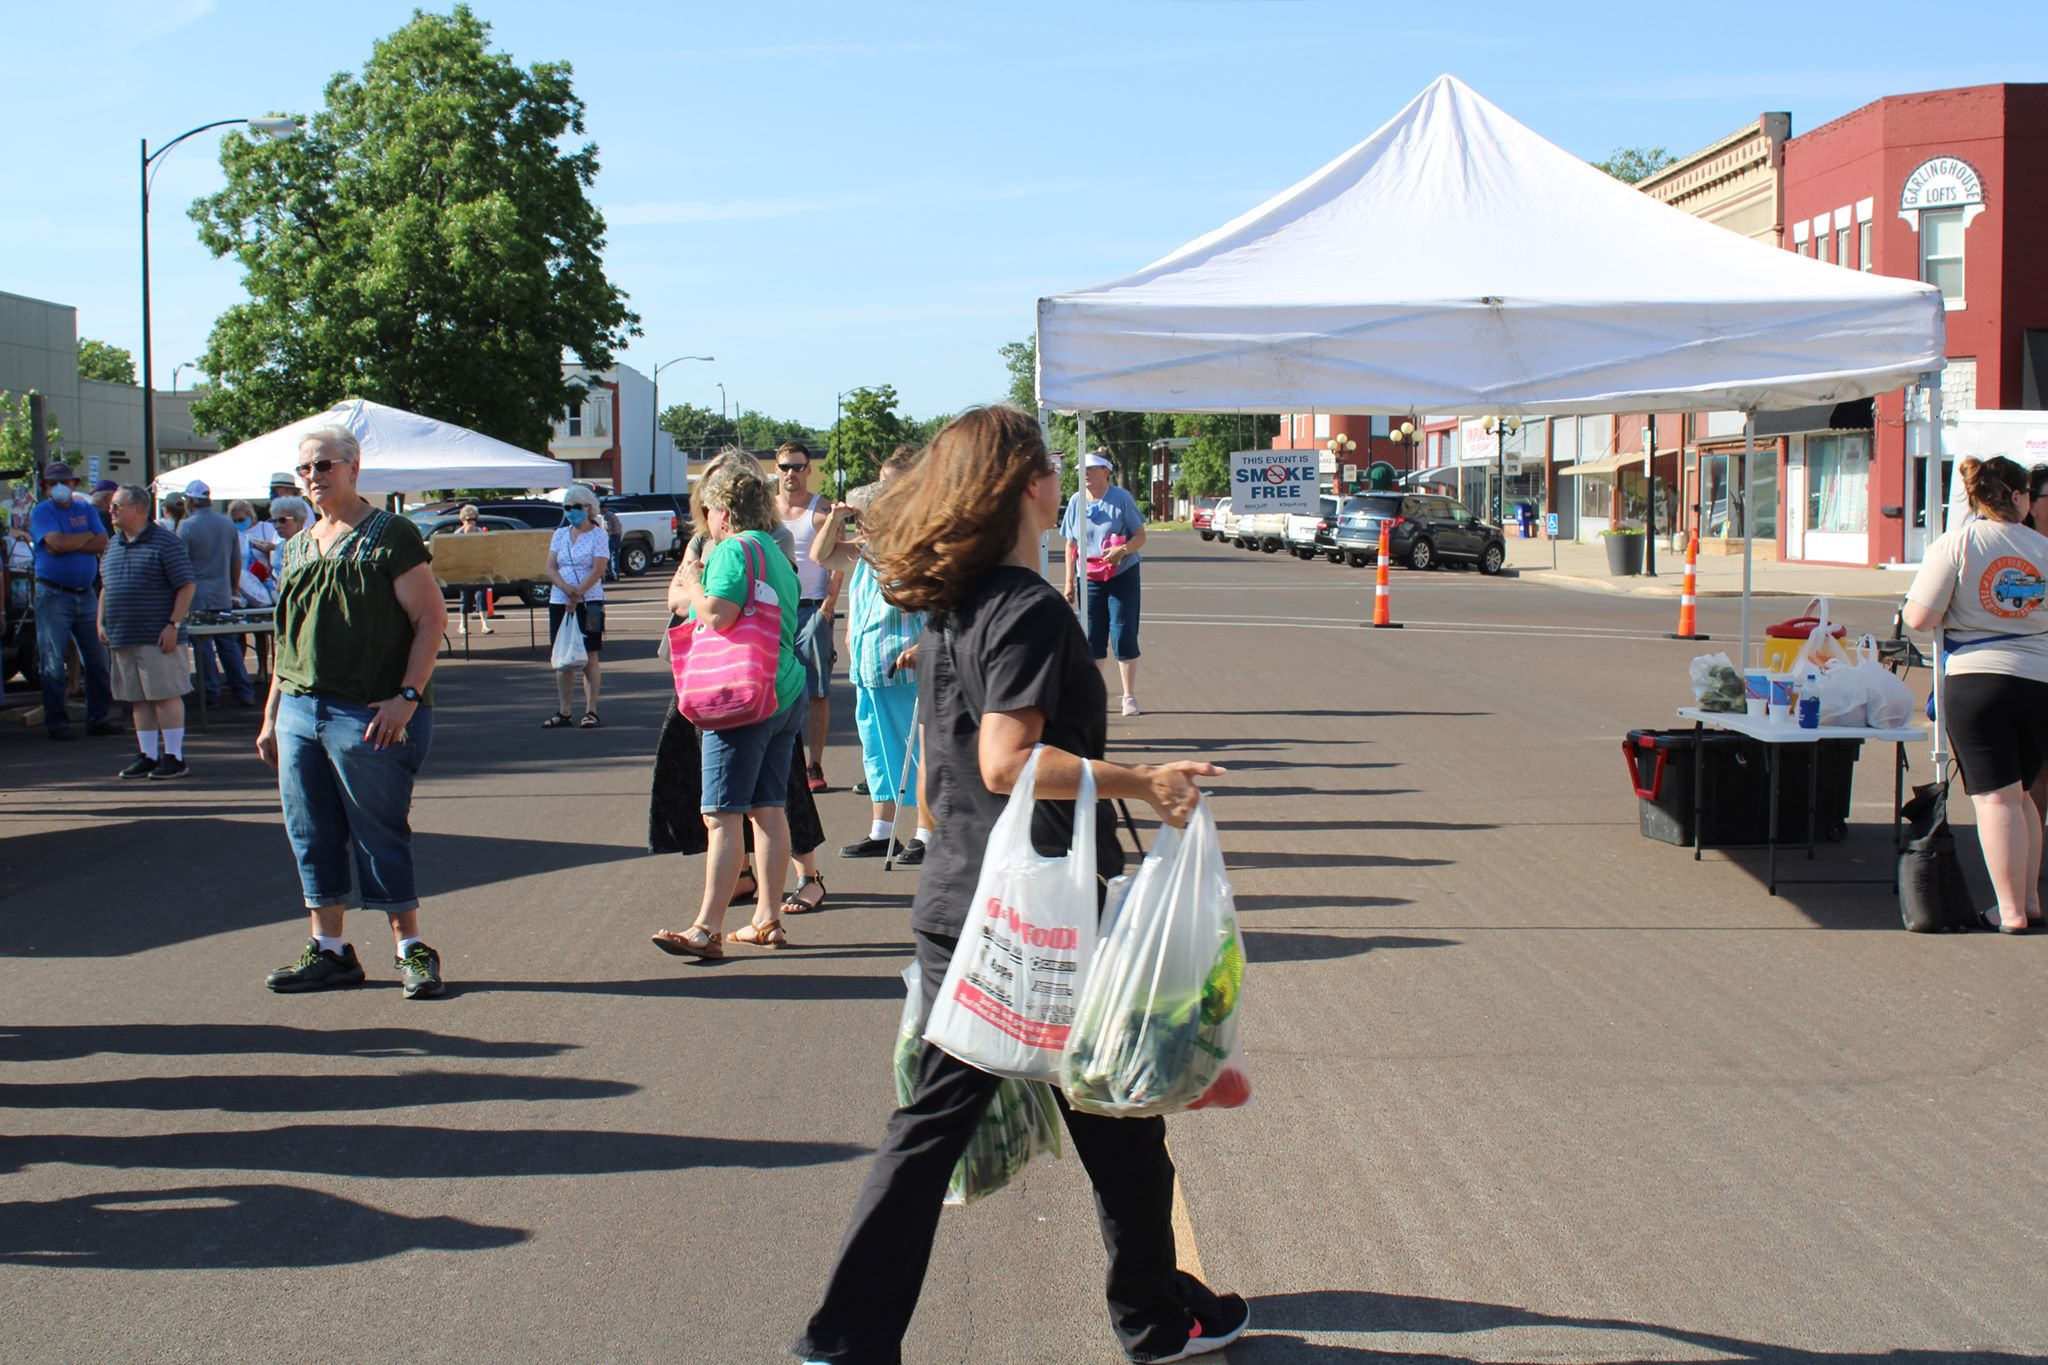 woman carrying grocery bags at farmers market